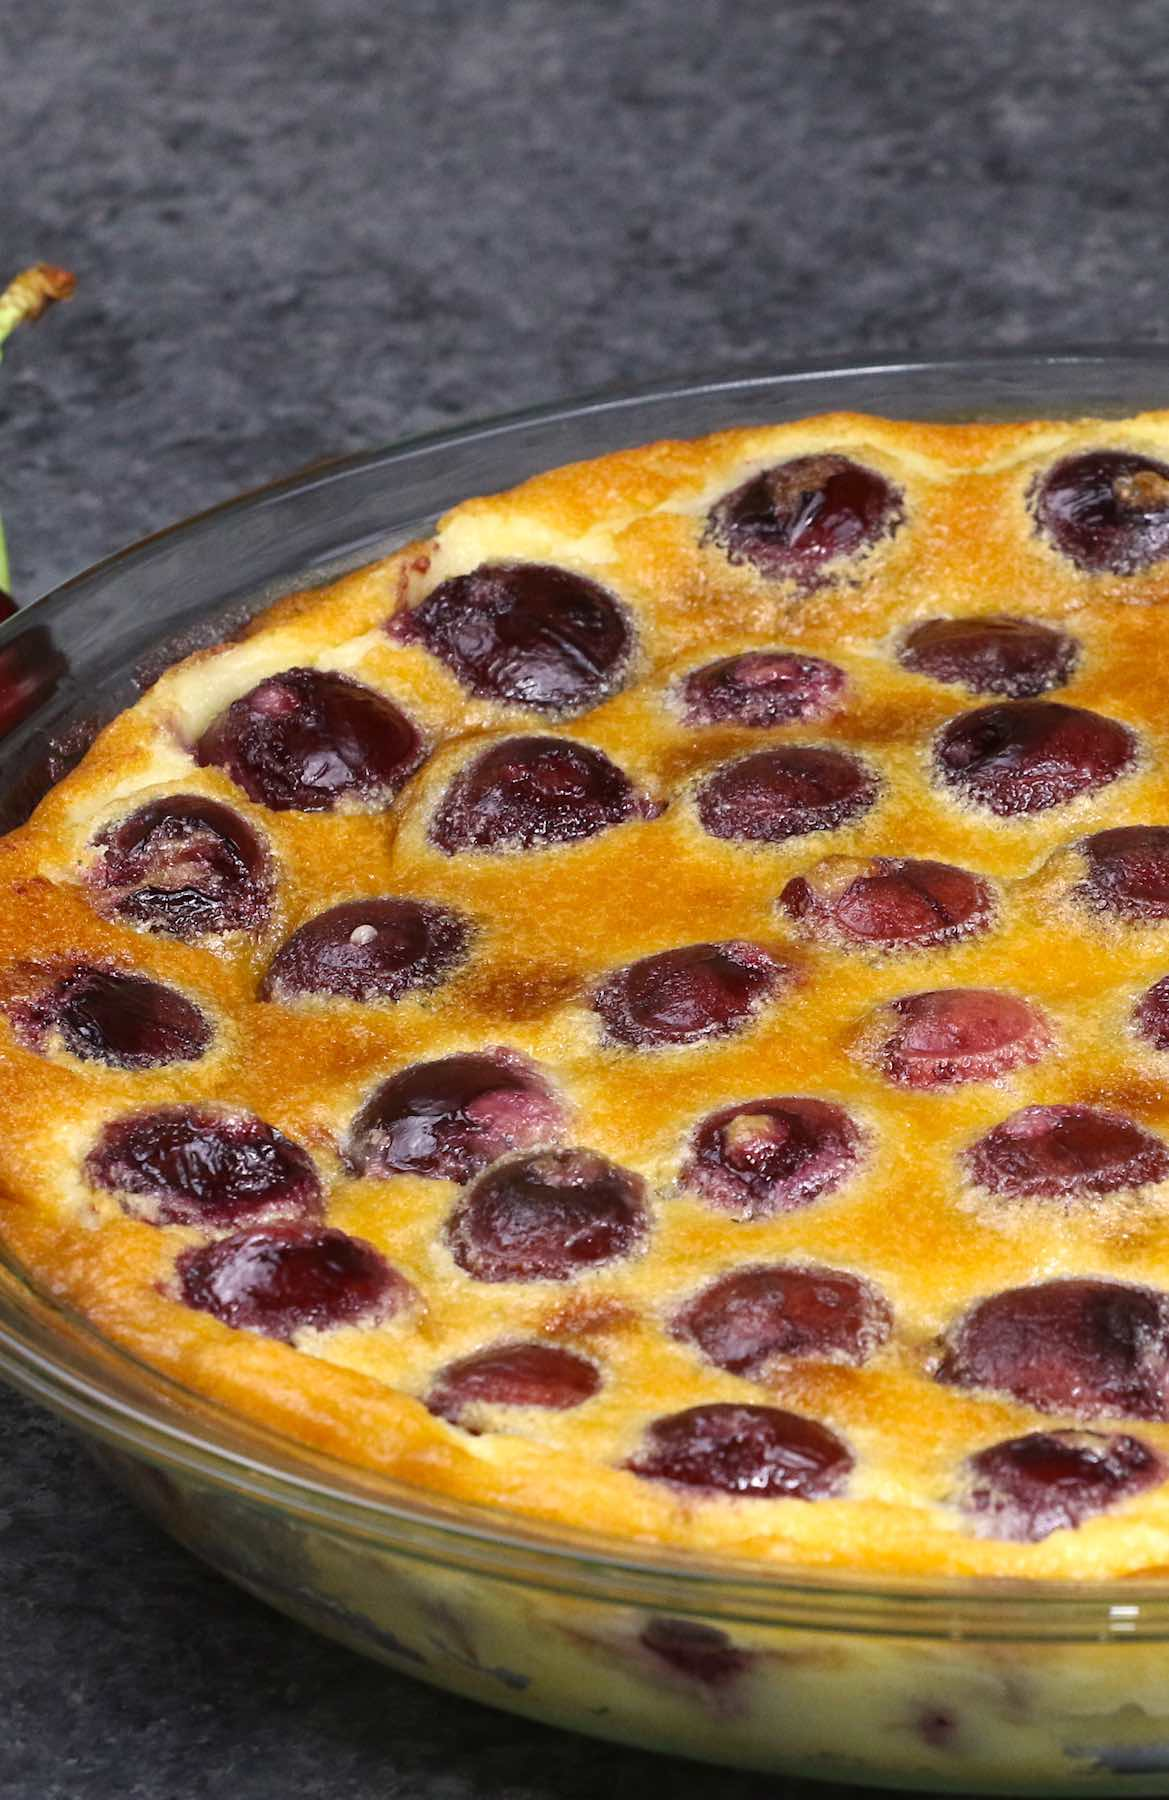 Closeup of a baked clafoutis aux cerises when done, showing the golden surface of the custard interspersed with cherries